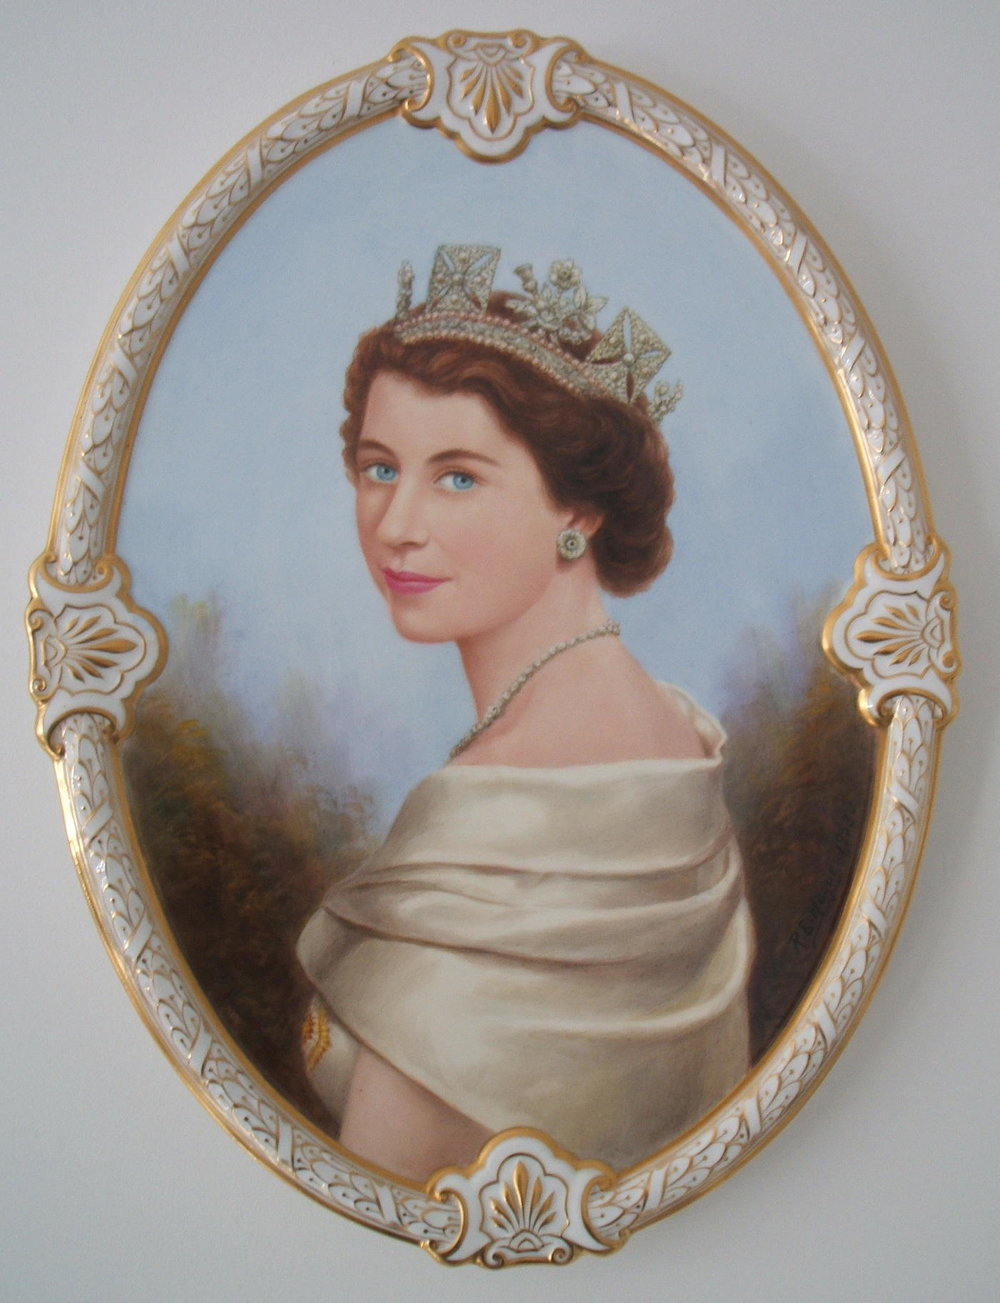 royal-crown-derby-elizabeth-II-douglas-hague-coronation-plaque-1953